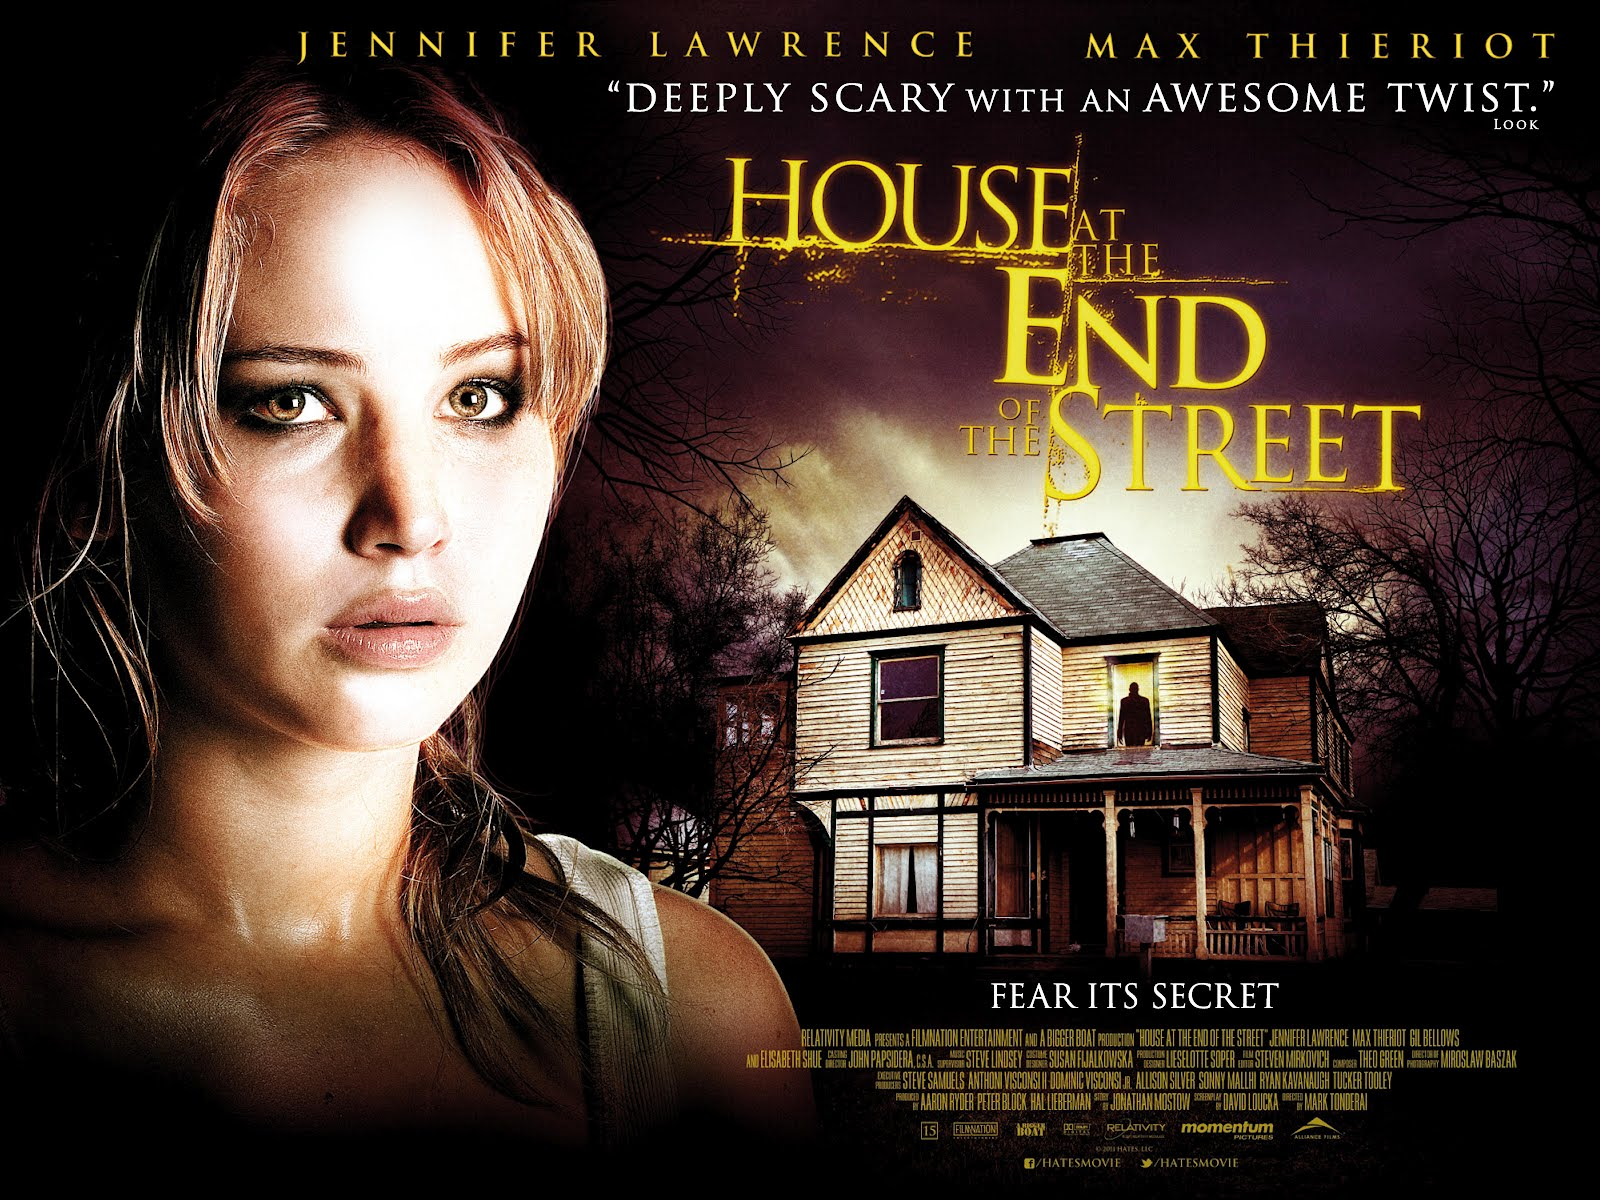 house at the end of the street movie wallpapers - House at the End of the Street Movie Wallpaper #4